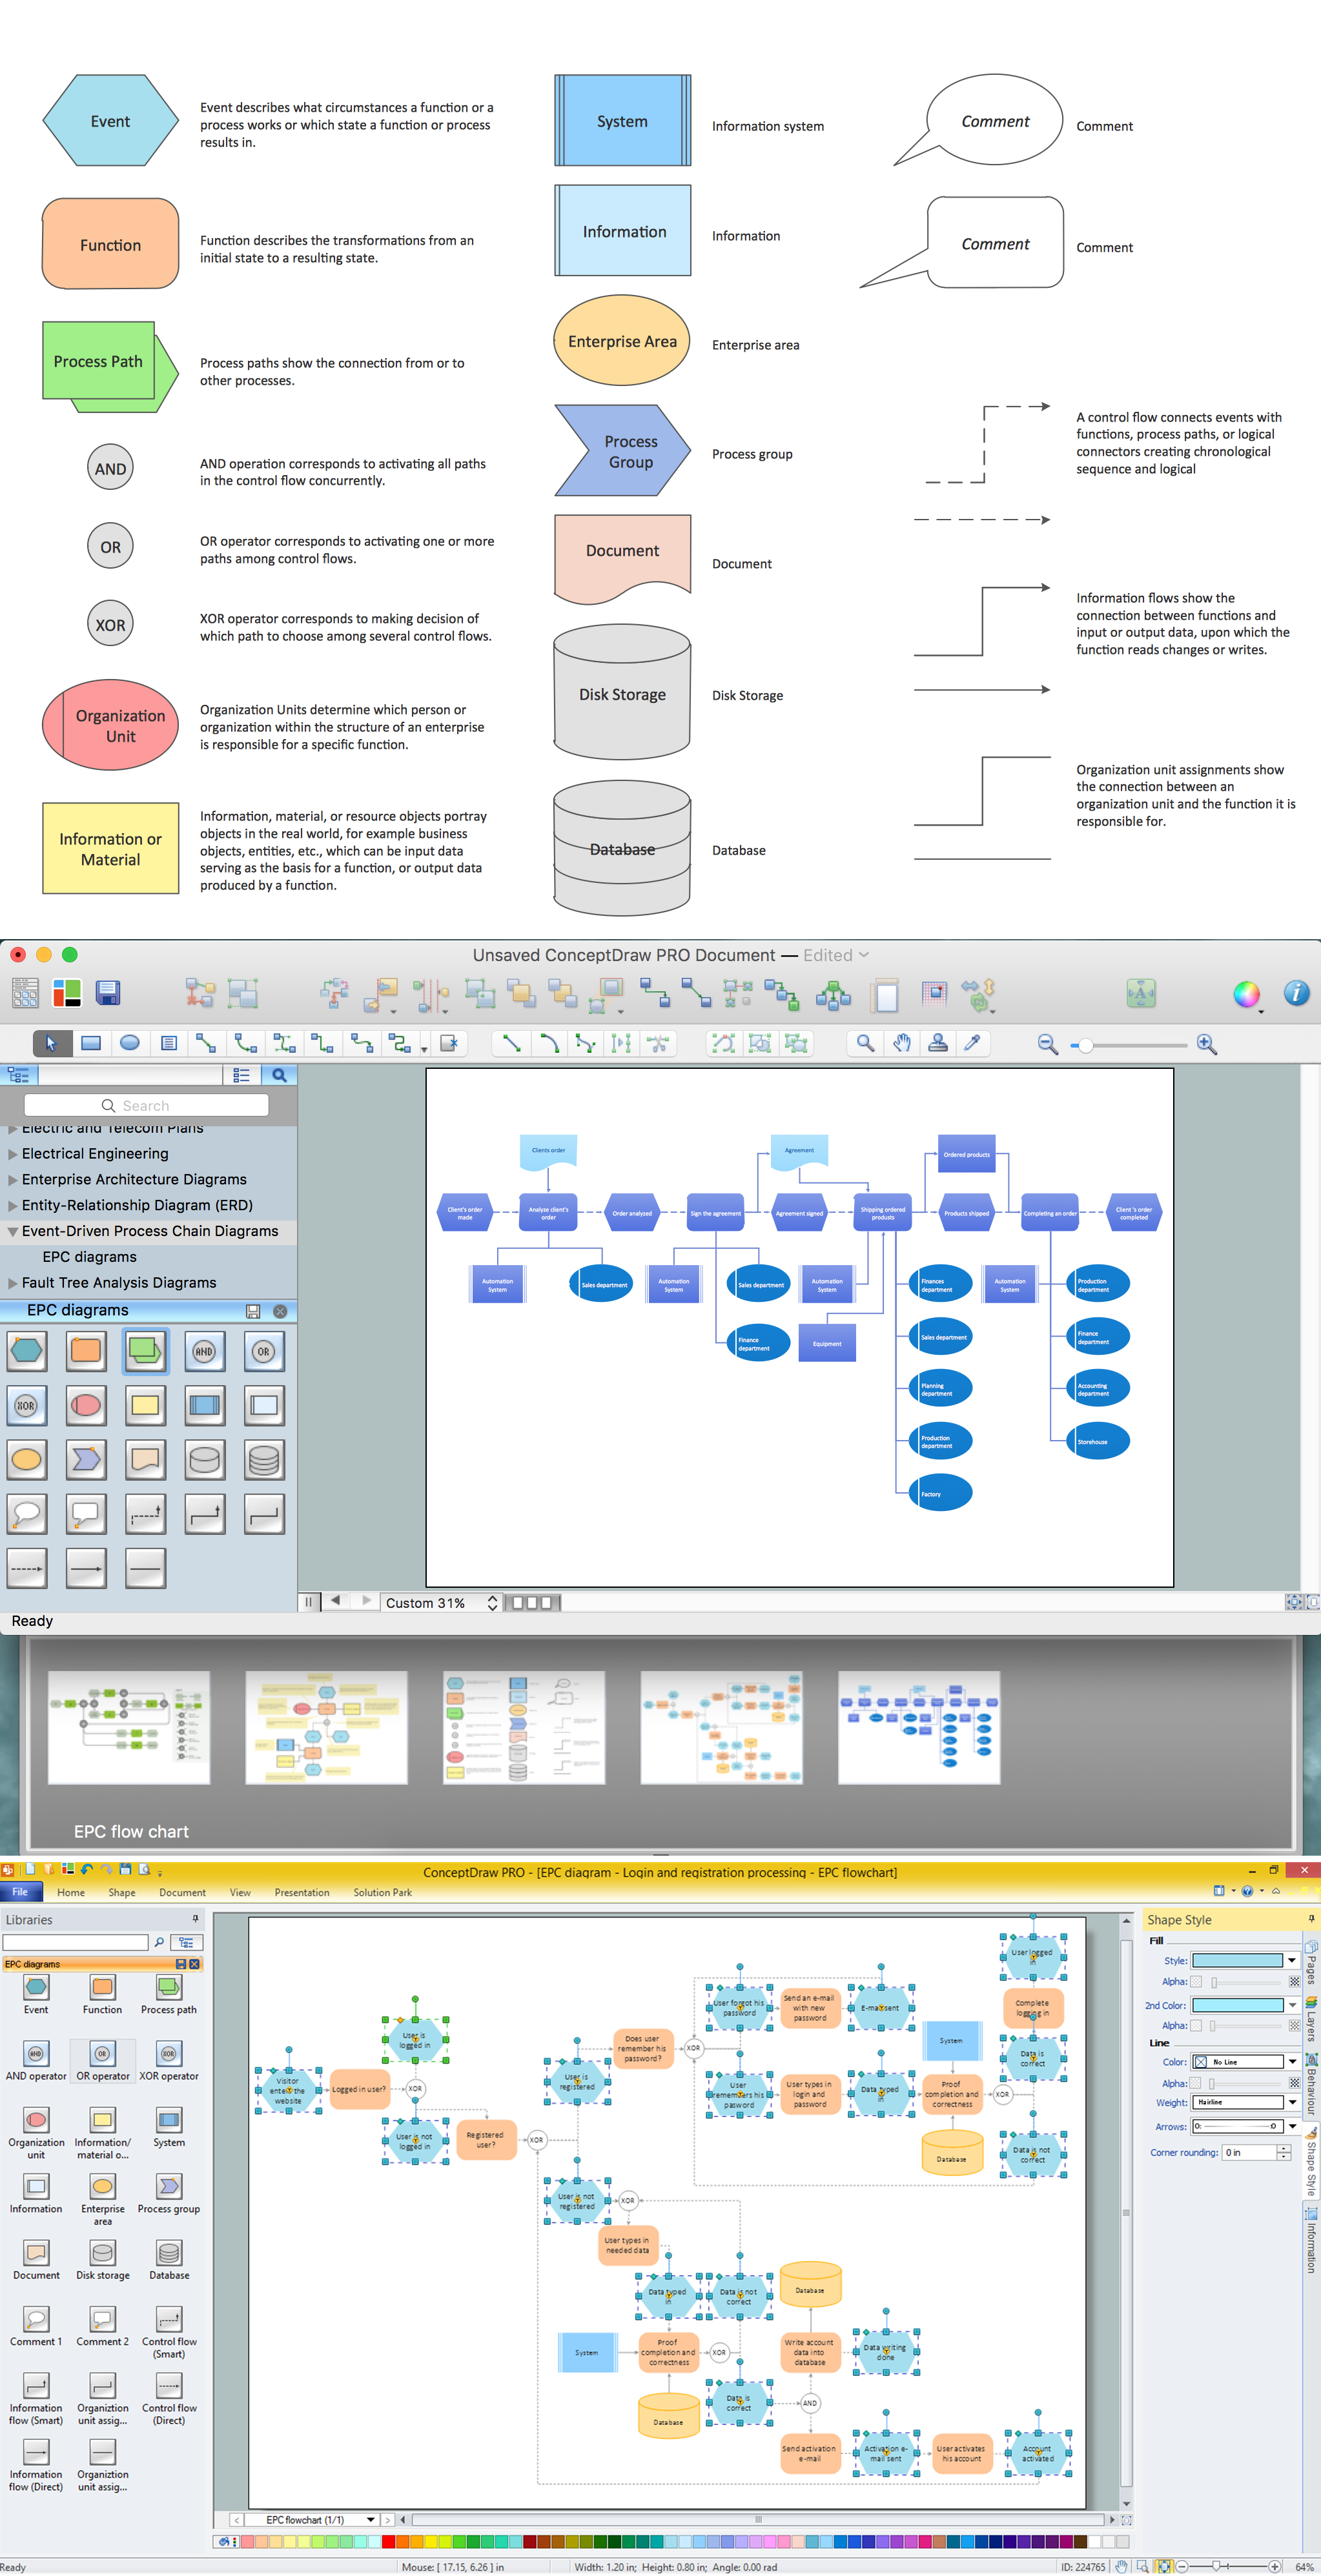 The Best Tool for Business Process Modeling